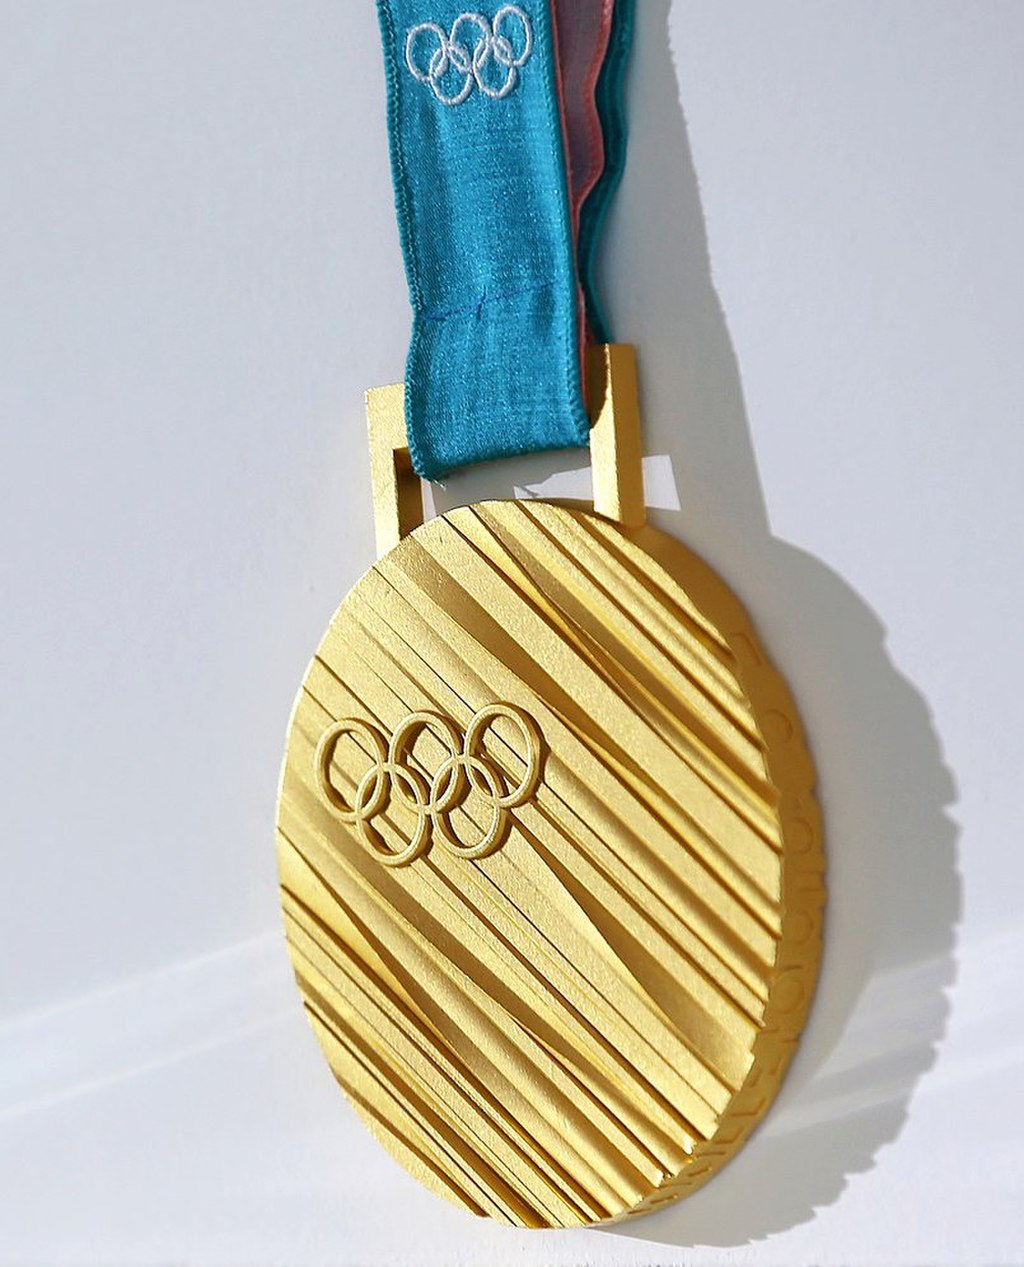 File:Gold medal of the 2018 Winter Olympics in in ...